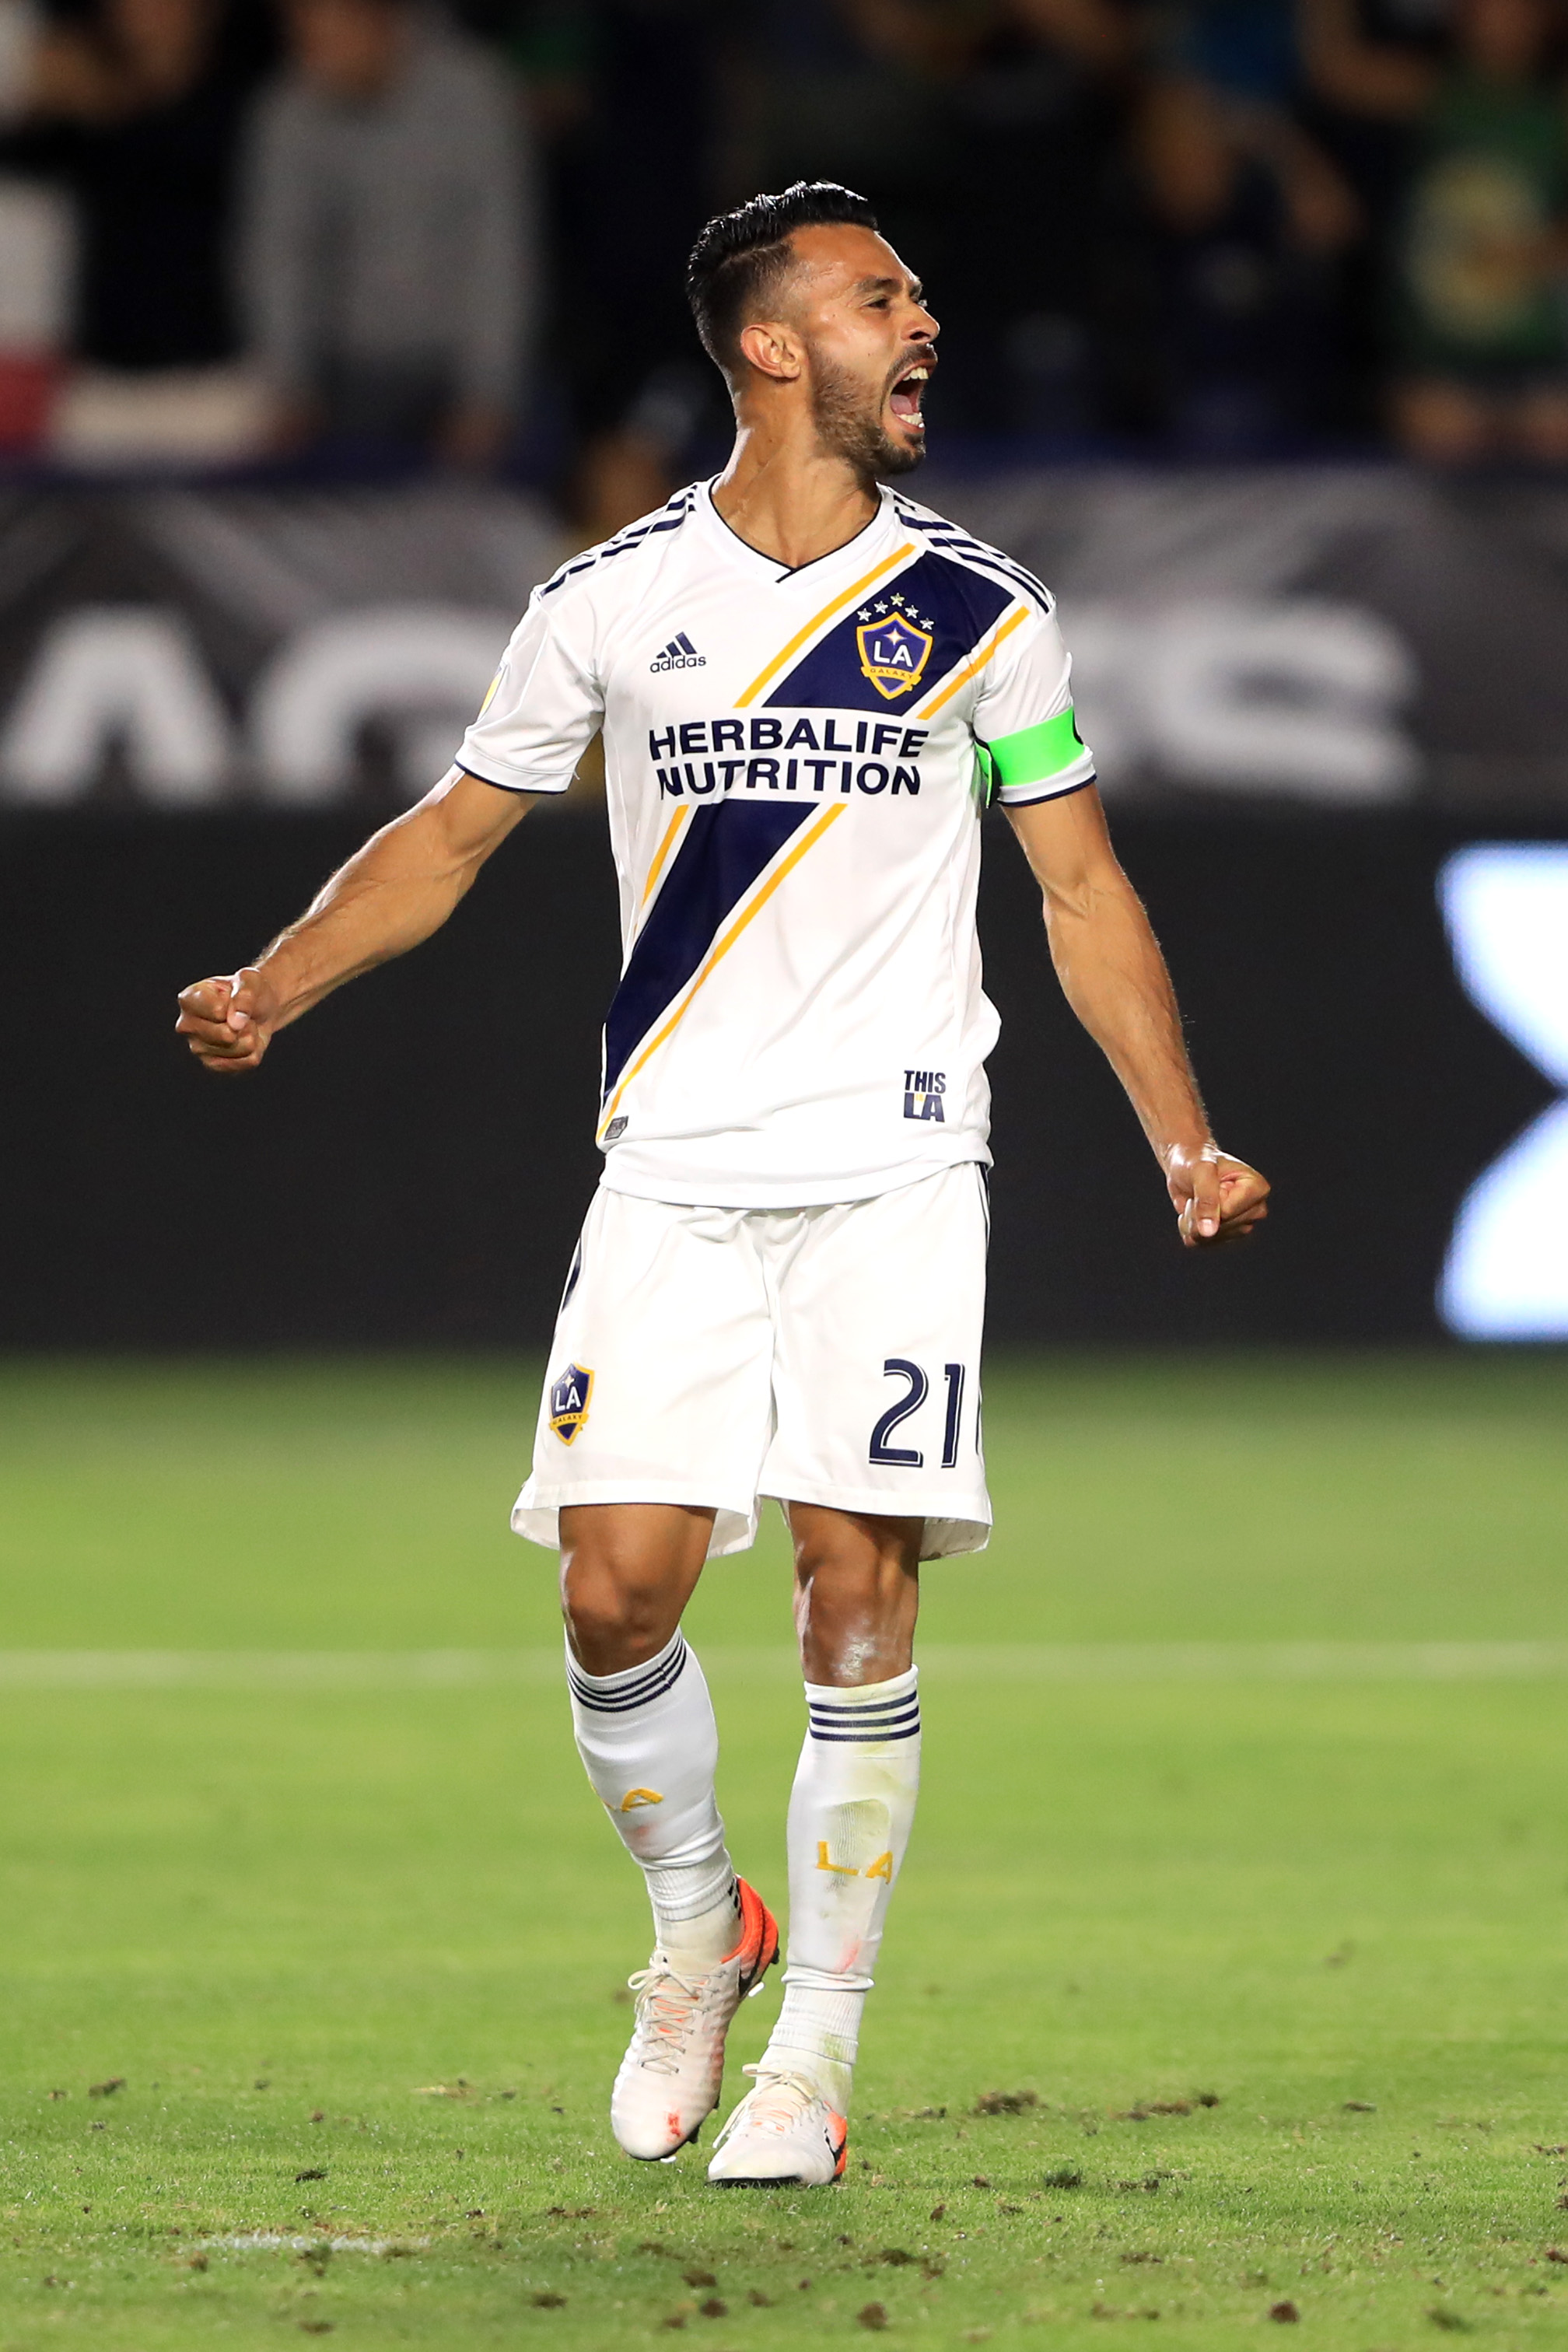 Galaxy gives up decisive goal on late penalty kick in loss to Rapids